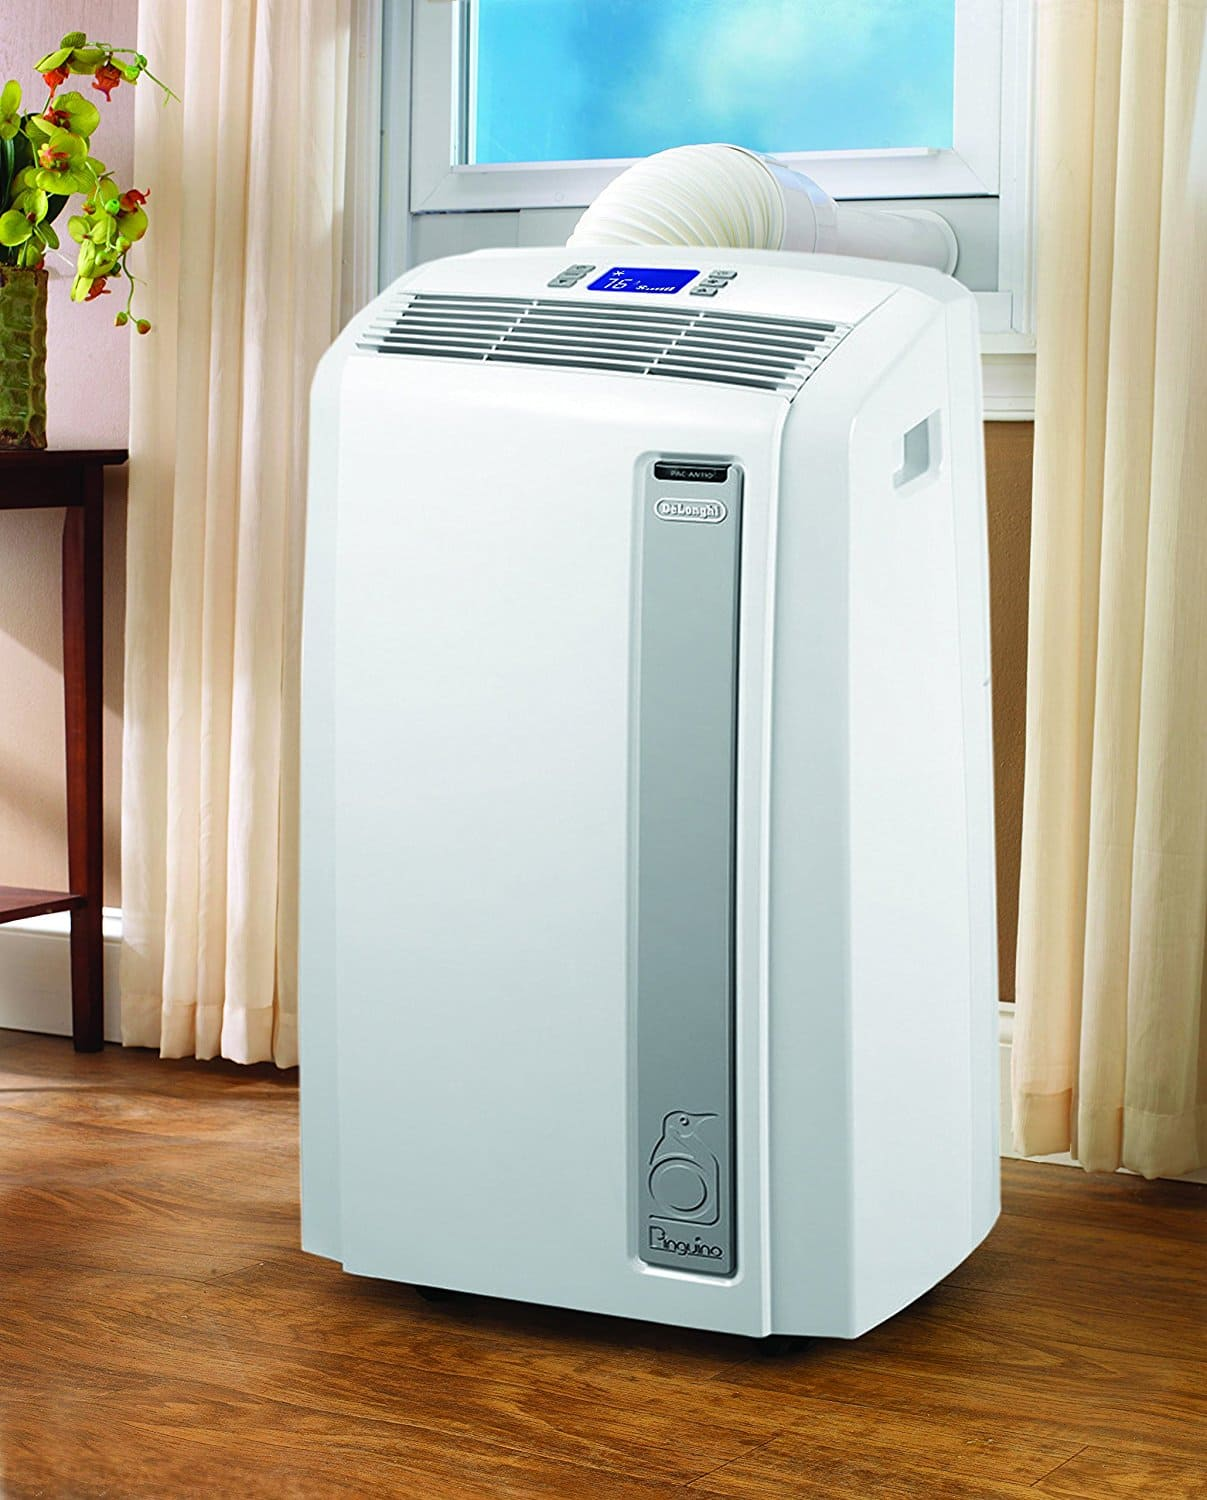 DeLonghi America 14,000 BTU Portable 3-in-1 Air Conditioner, Dehumidifier and Fan - $299 (was $599) @ Amazon